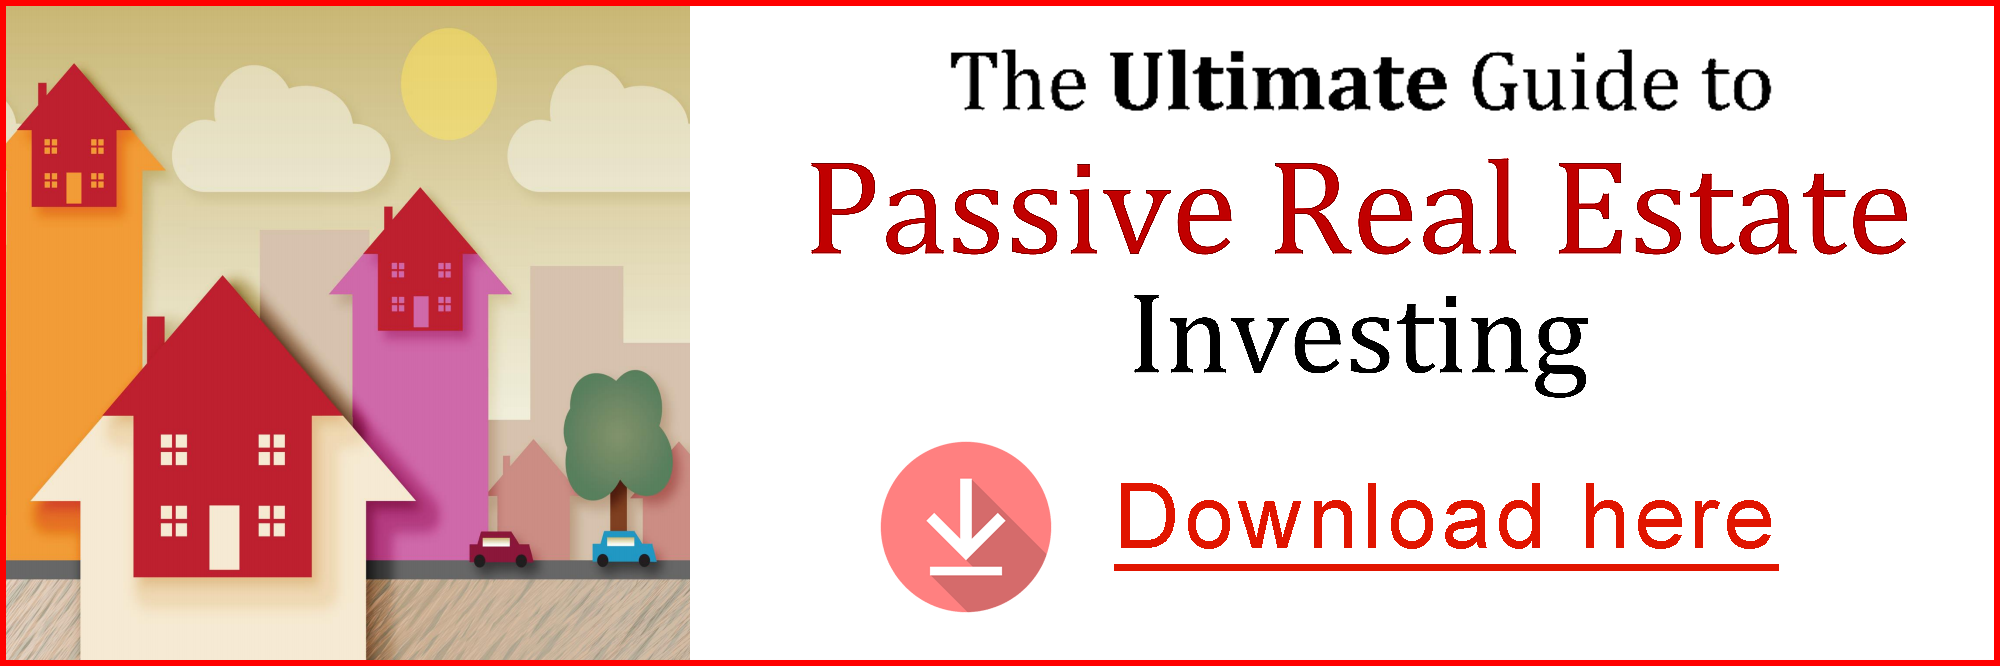 Download the Guide to Real Estate Investing